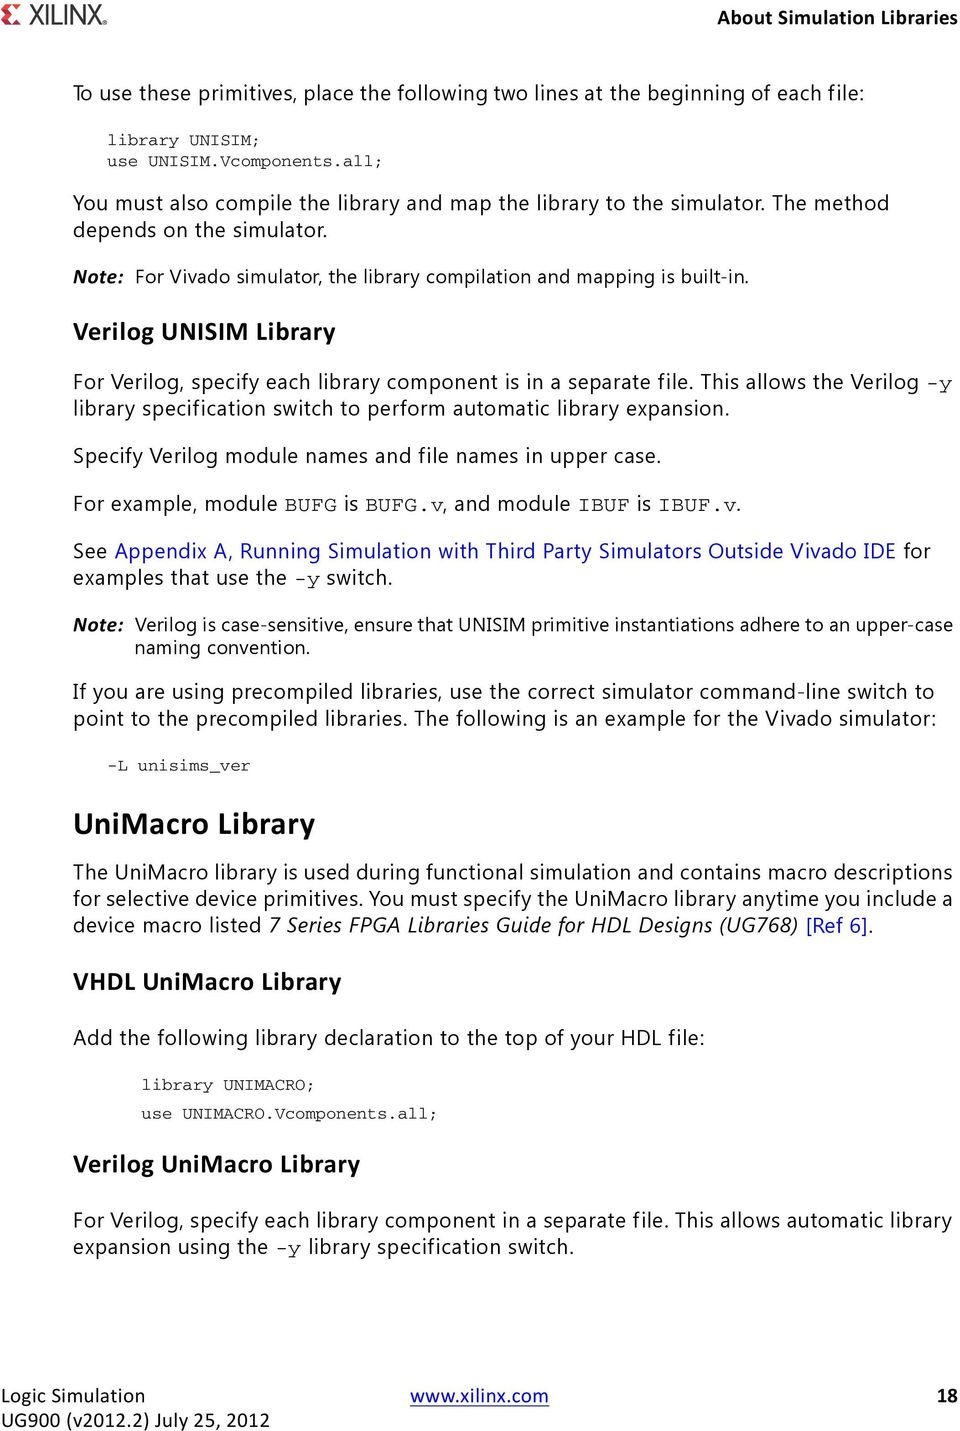 Verilog UNISIM Library For Verilog, specify each library component is in a separate file. This allows the Verilog -y library specification switch to perform automatic library expansion.